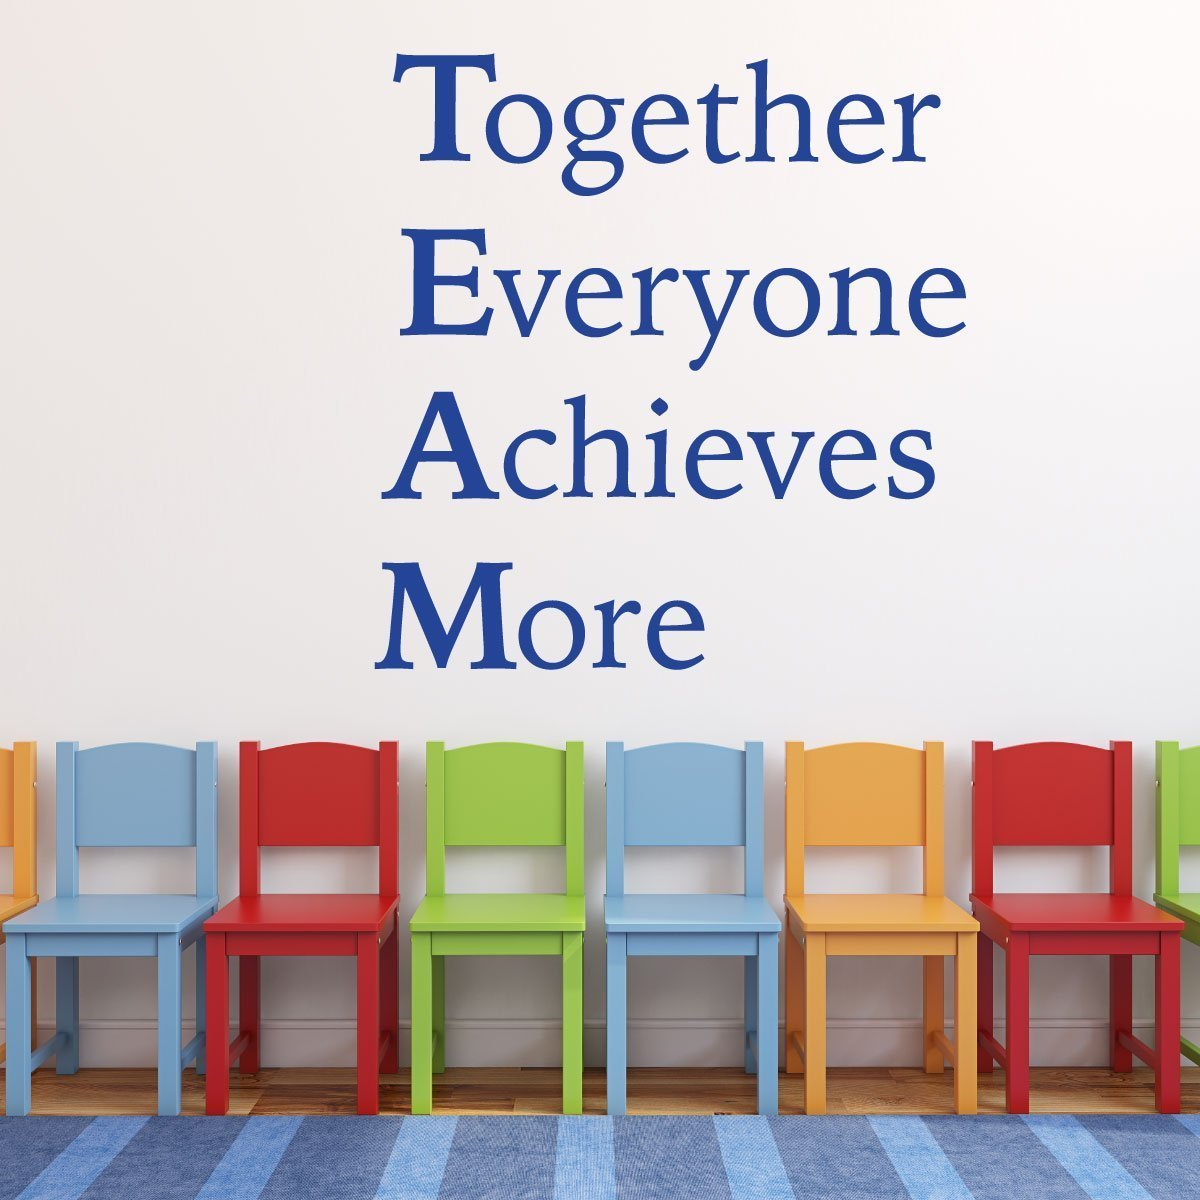 Classroom Wall Decor for Teachers- Team Work Inspirational Quote - Together Everyone Achieves More - Removable Vinyl Decal, Great for Office